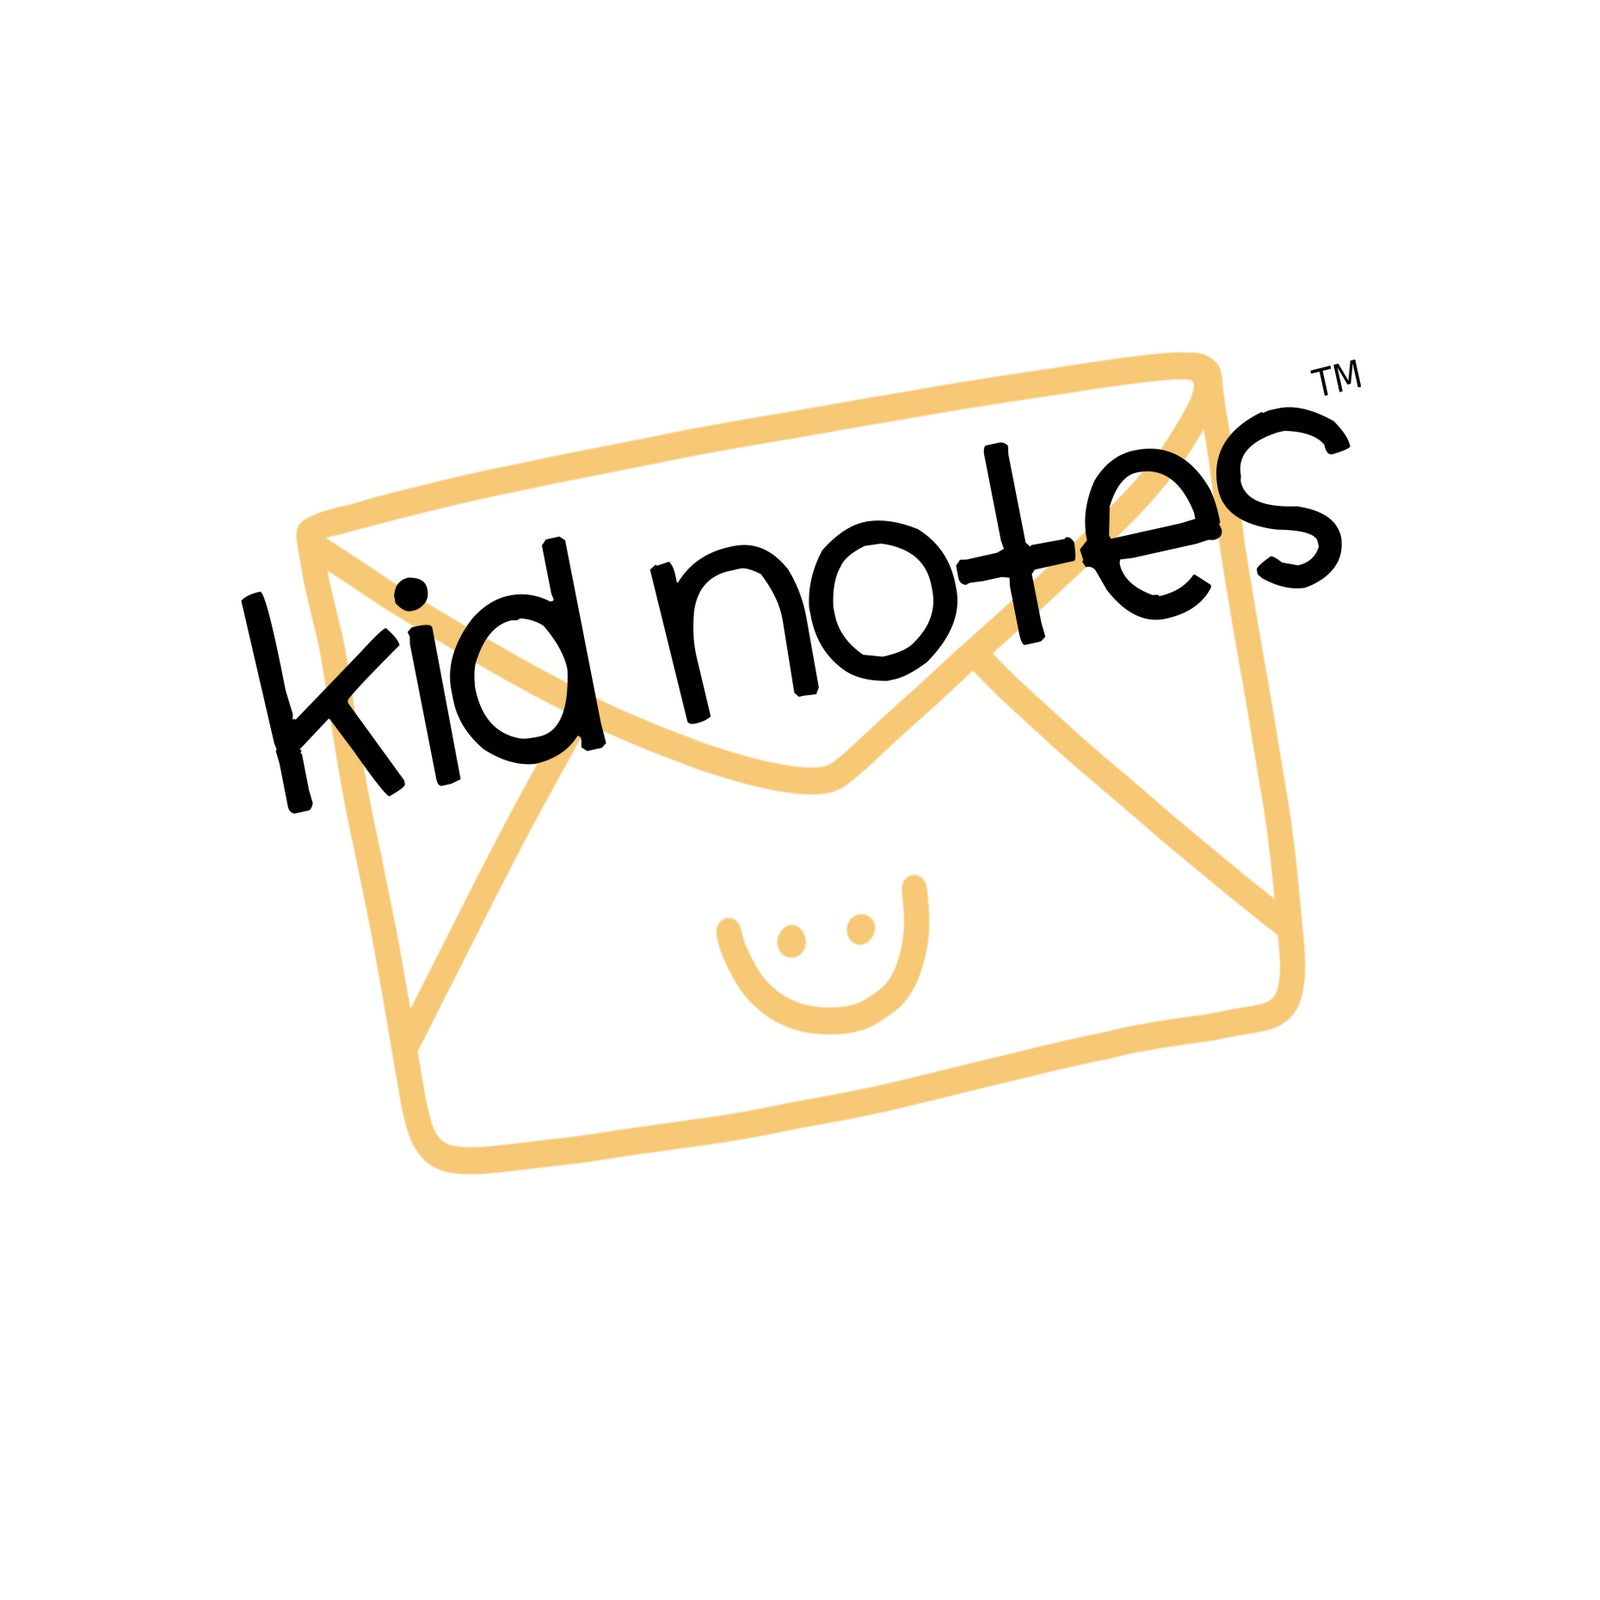 Kid Notes